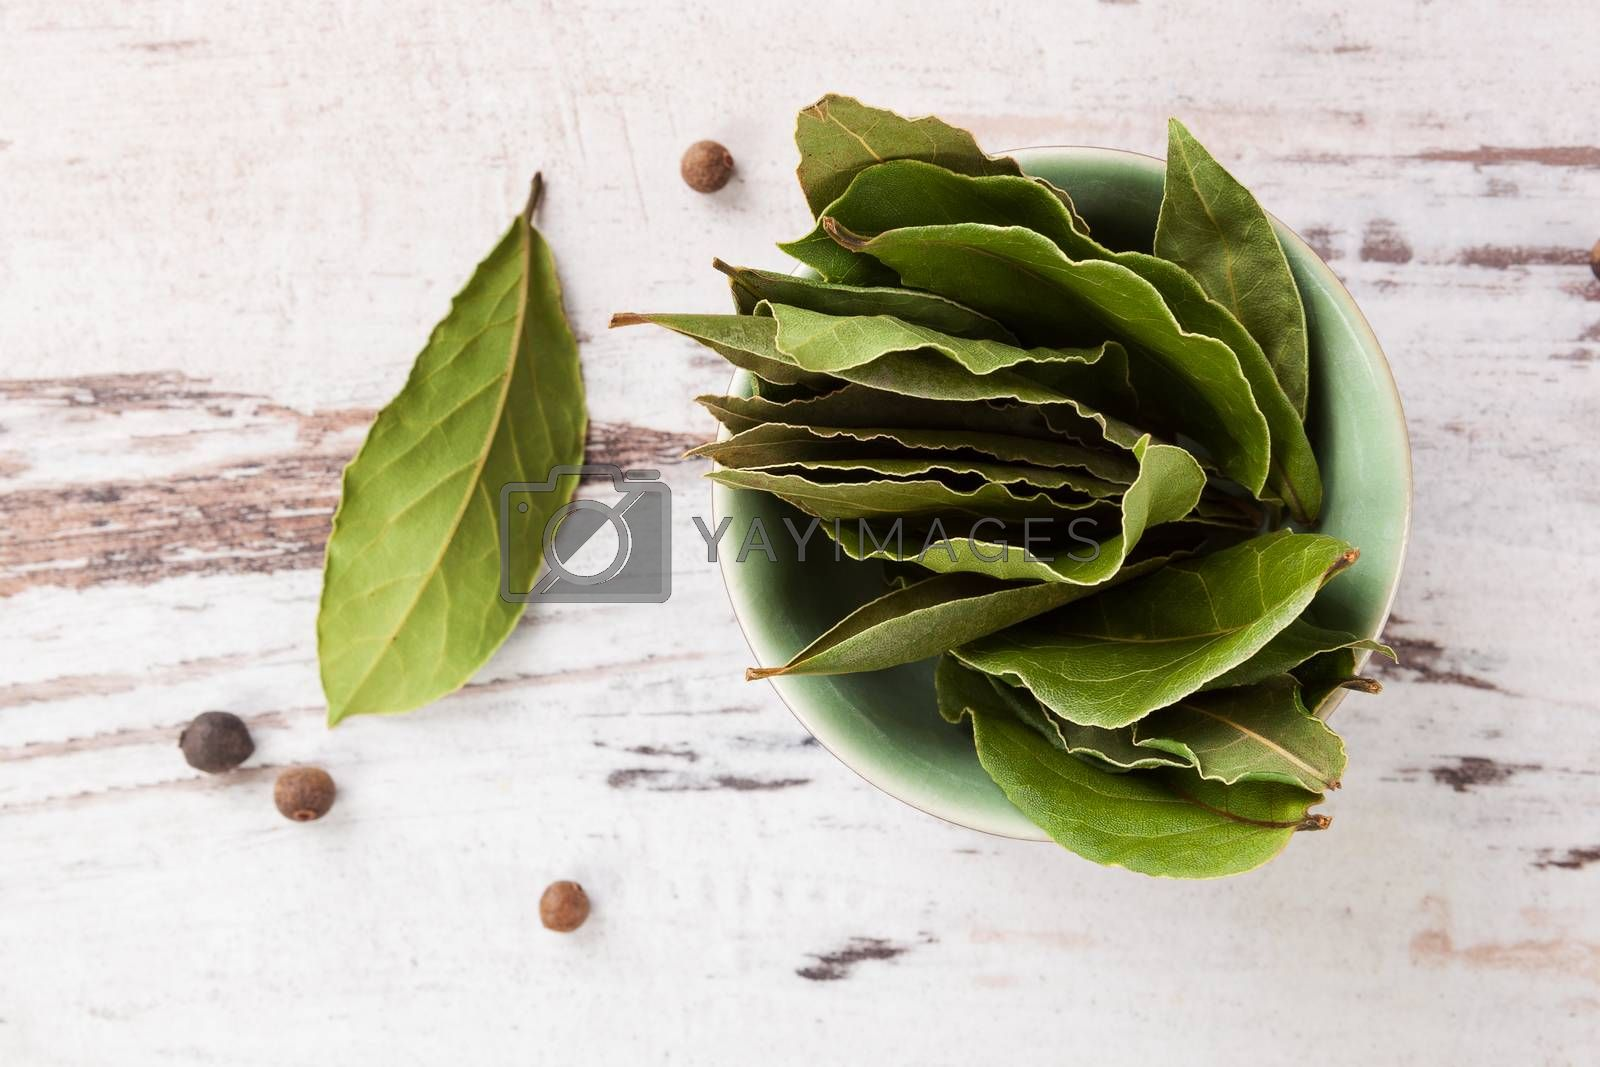 Dry bay leaves on white wooden textured background. Culinary herb, cooking ingredient and medical herb.